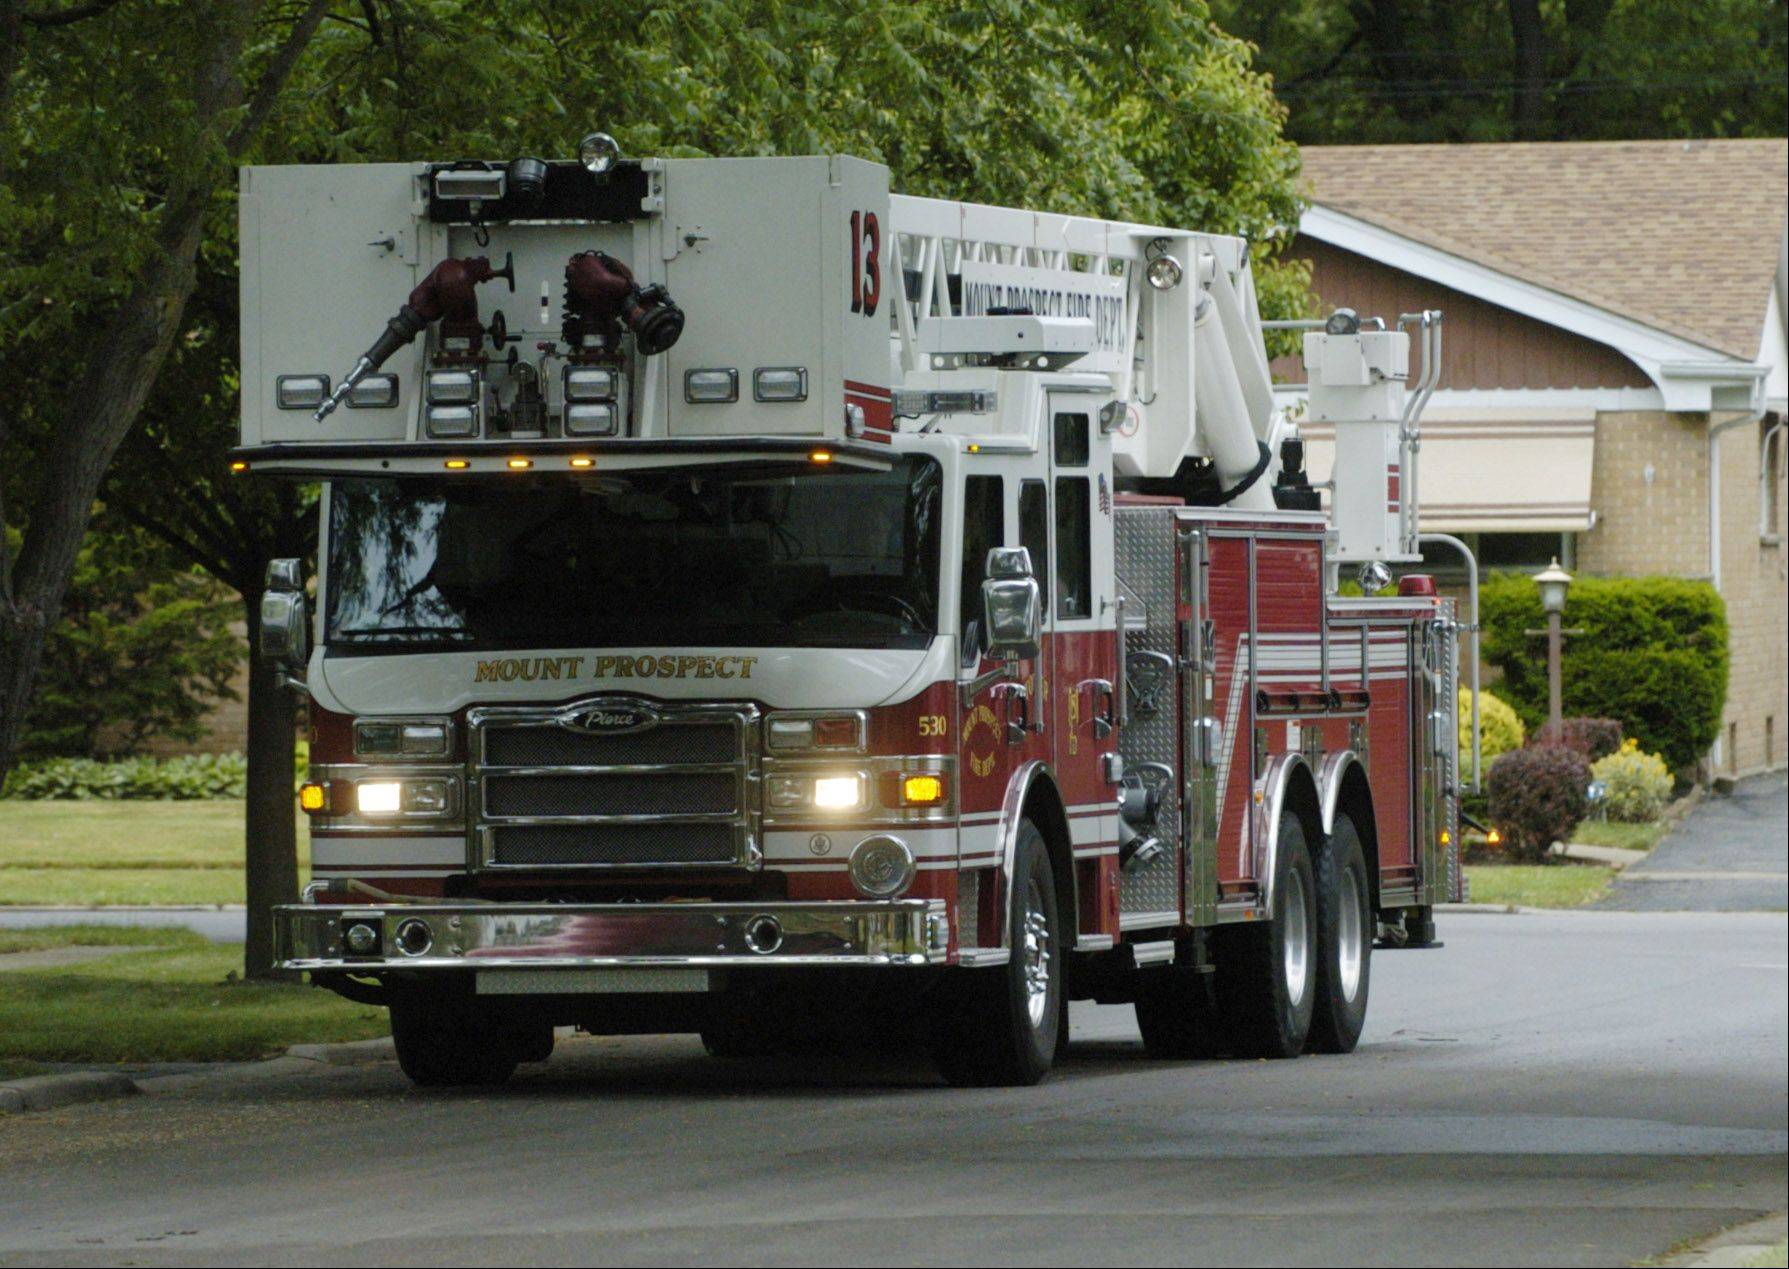 Mount Prospect's ladder truck, Tower 13: Trustees said is the department's policy of running the tower ladder on every call so as not to have to go back to the station to get it is concerning.